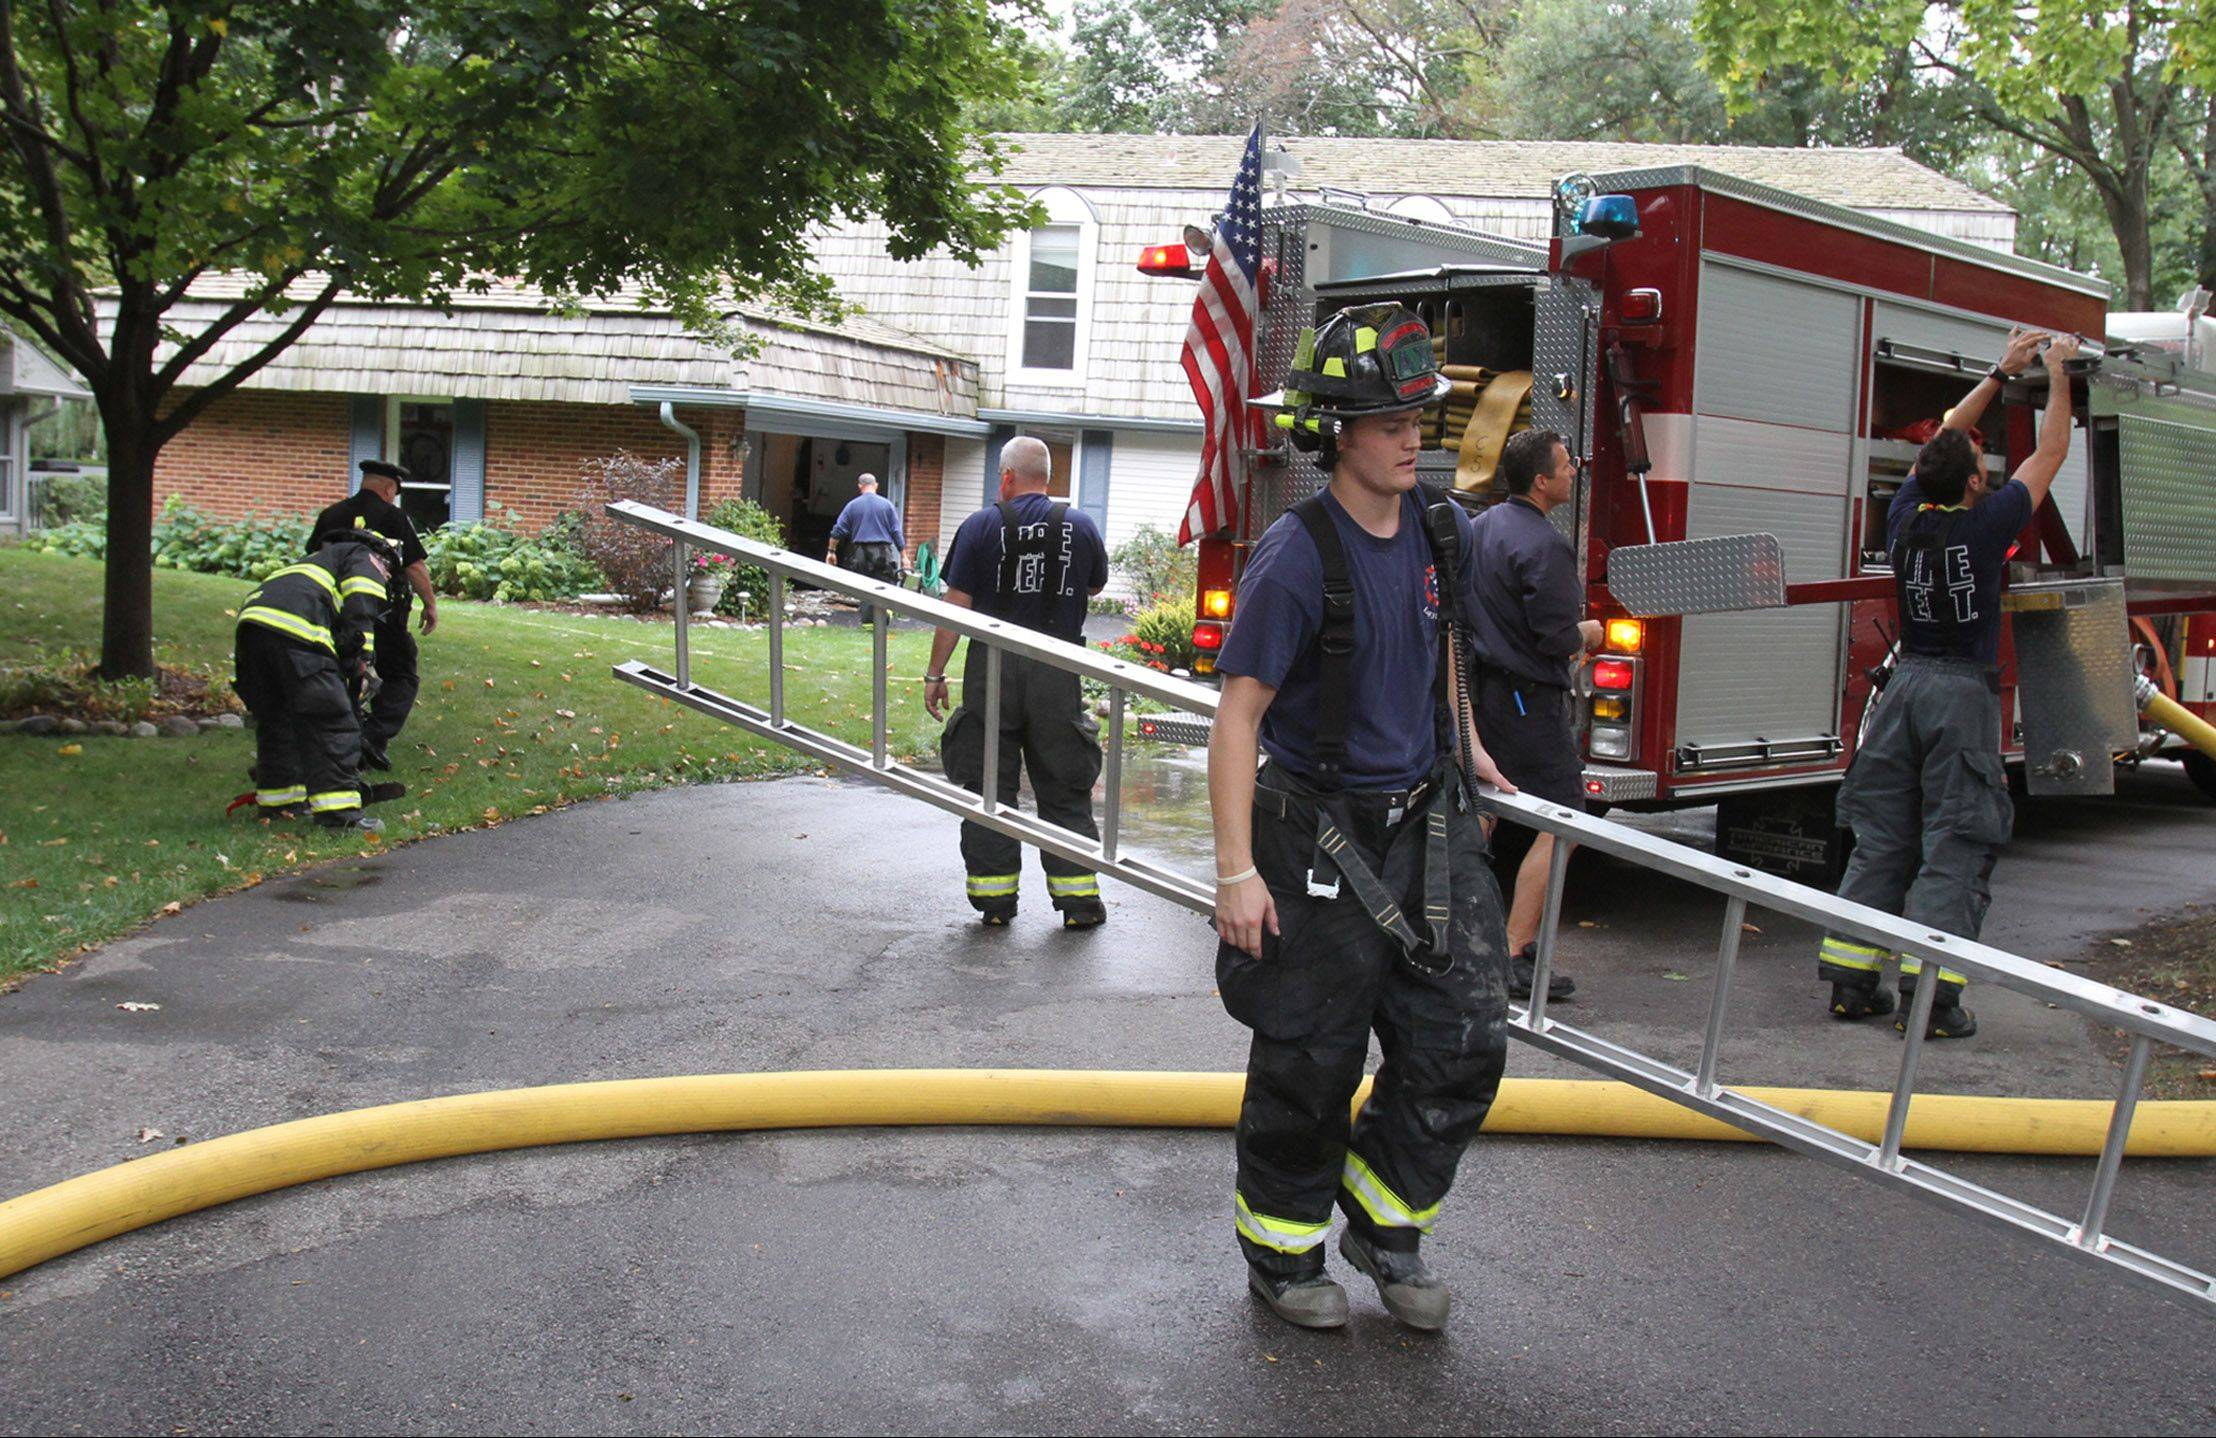 Rolling Meadows firefighters retrieve gear after a house fire on the 0-99 block of Fieldstone Road in Rolling Meadows on Wednesday.